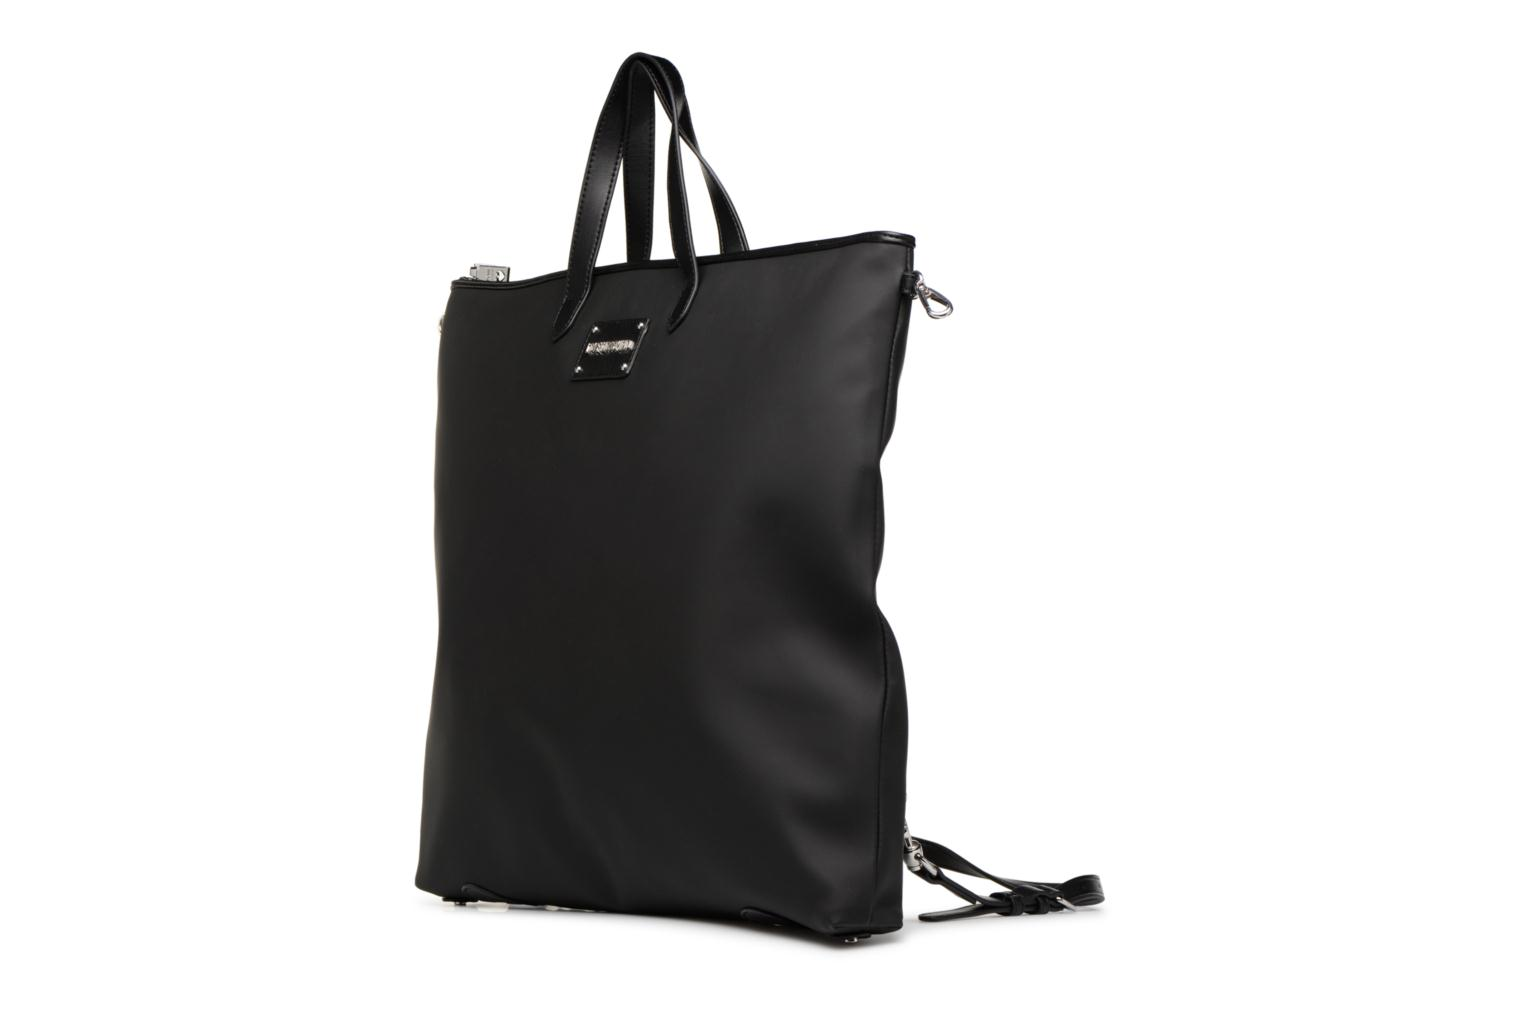 simili Grand Moschino Noir JC4275PP05KJ sac Love qptUHSp